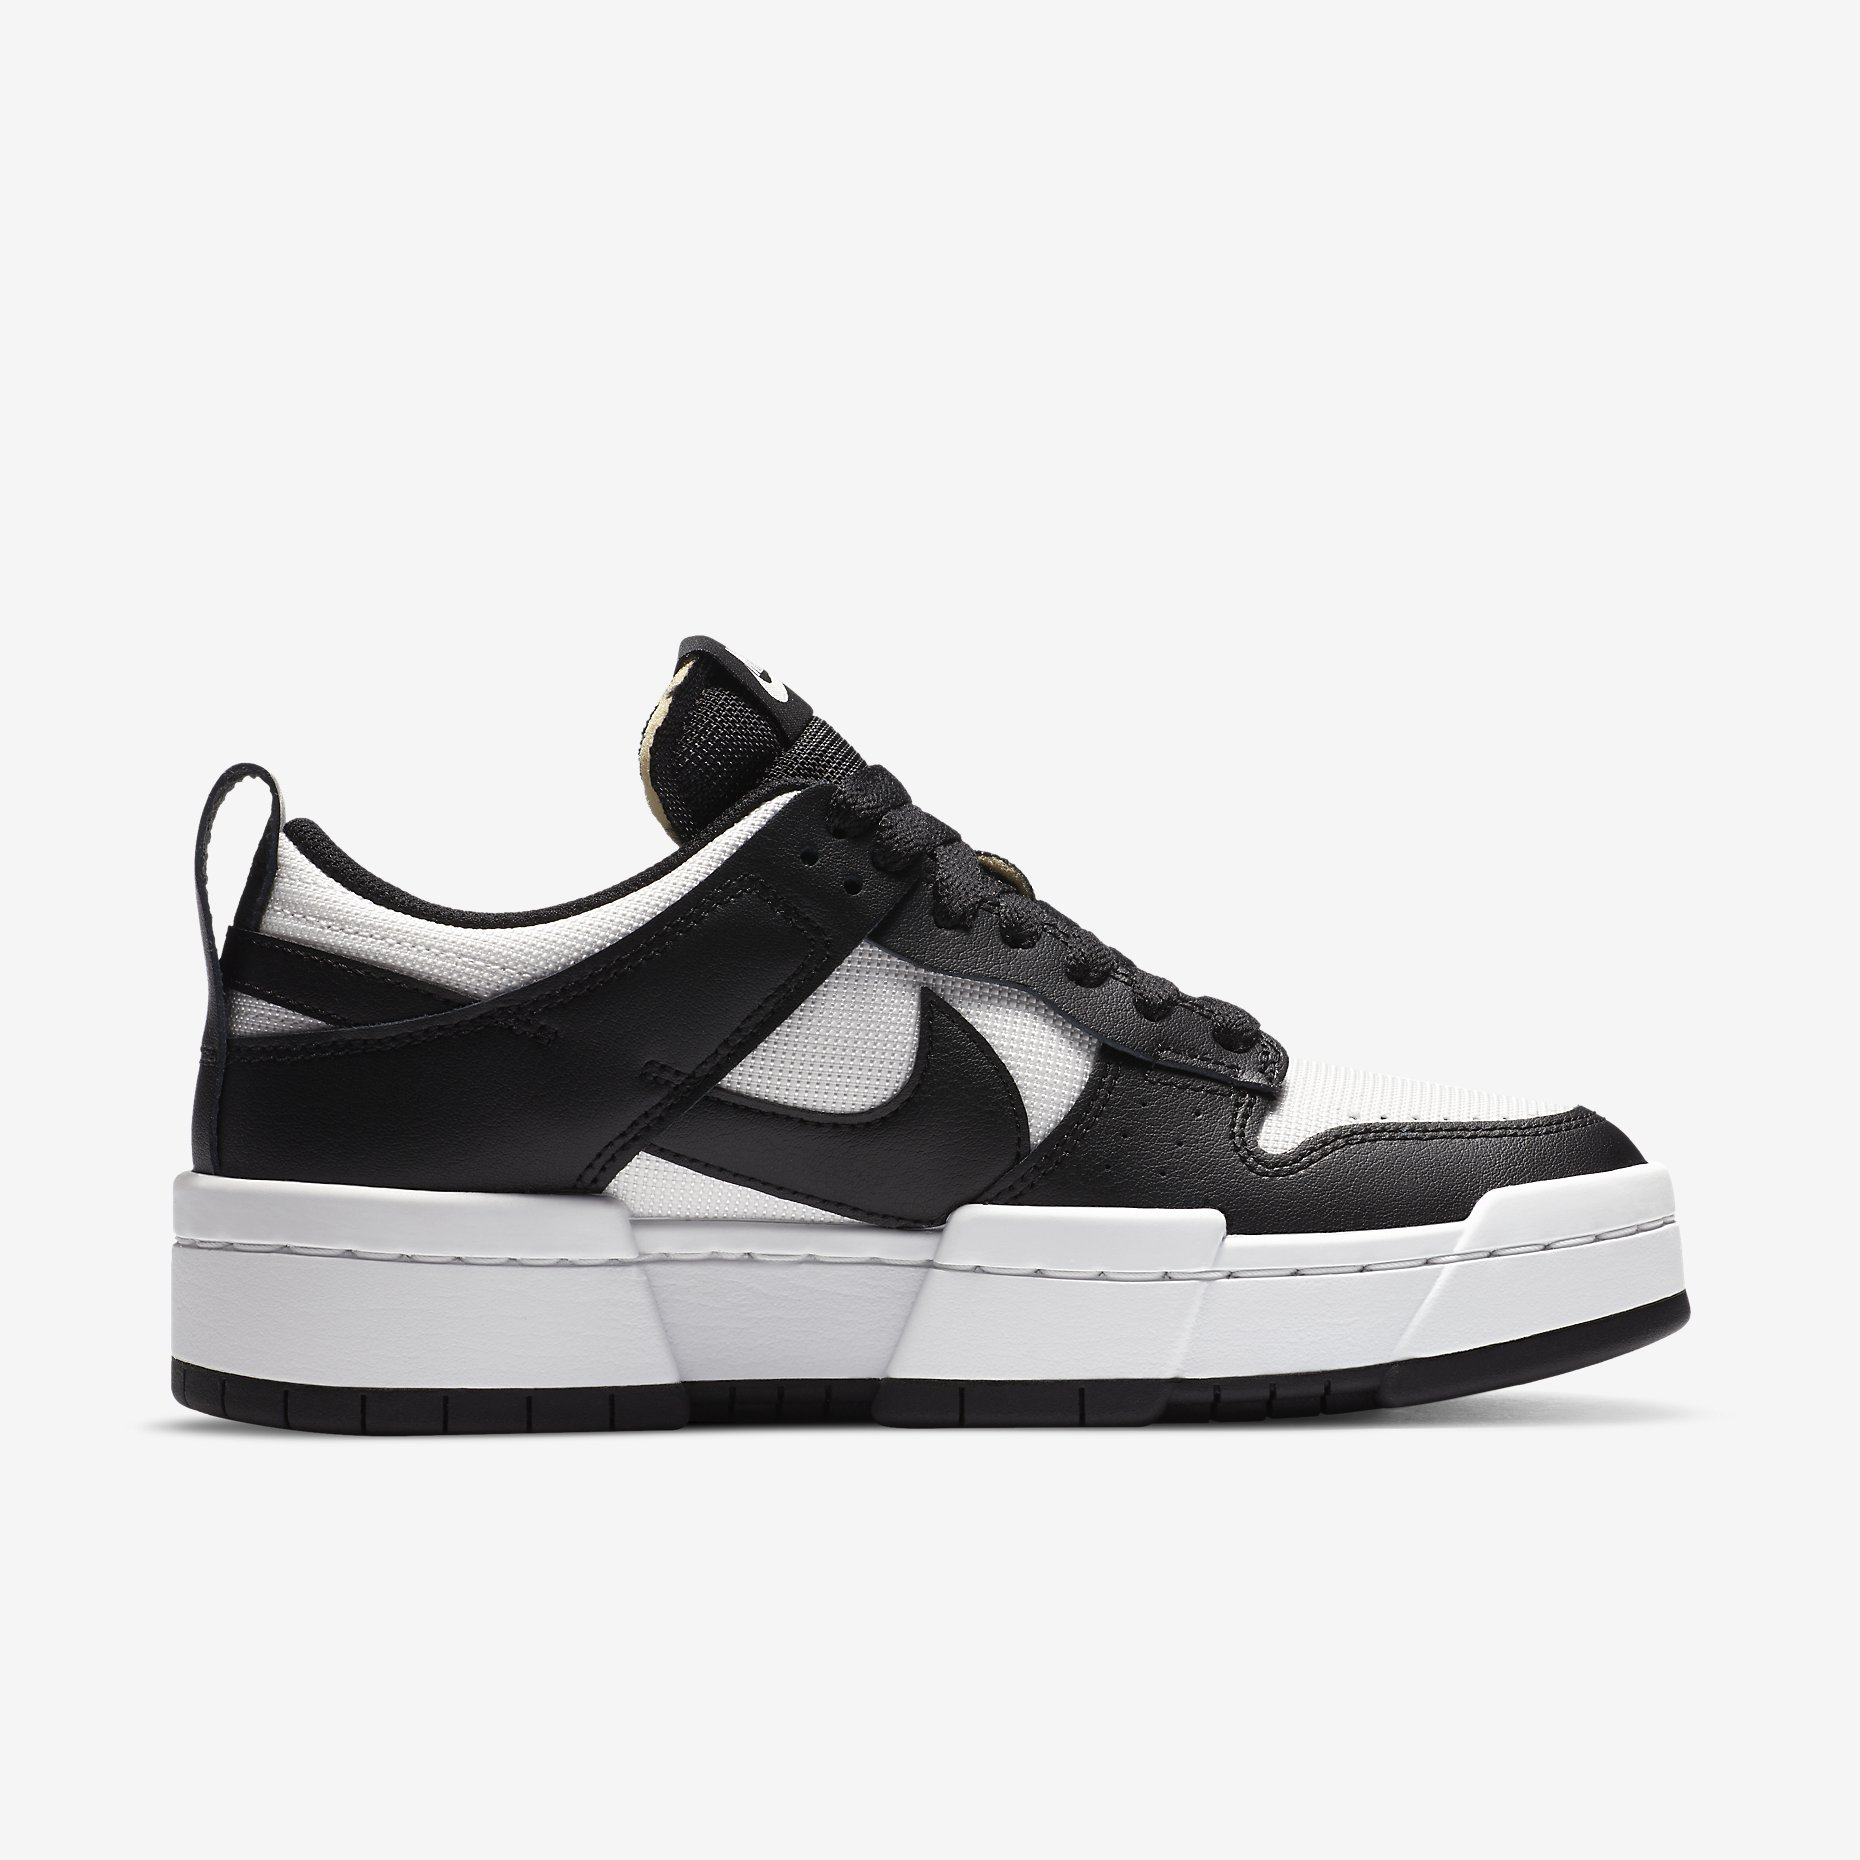 Women's Nike Dunk Low Disrupt 'Black/Summit White'}